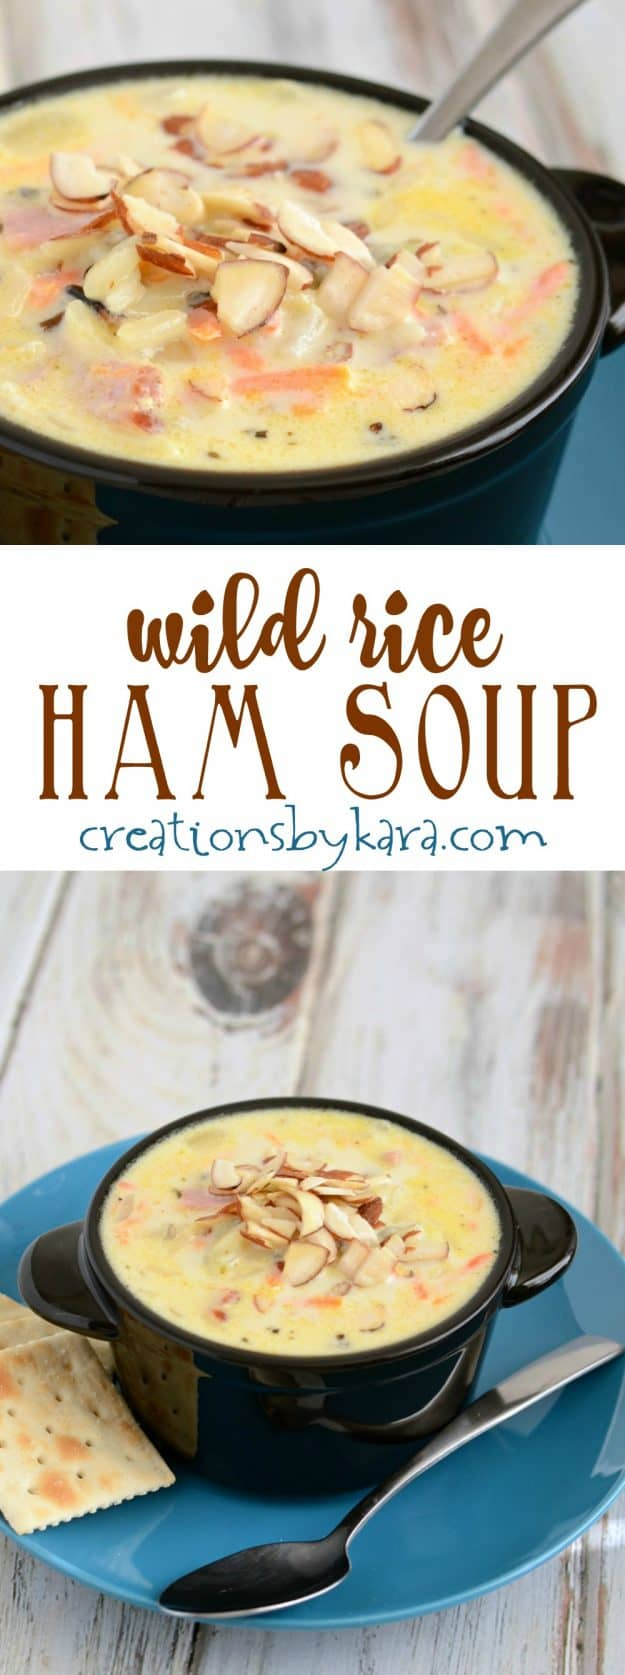 ham soup with wild rice long pinterest collage